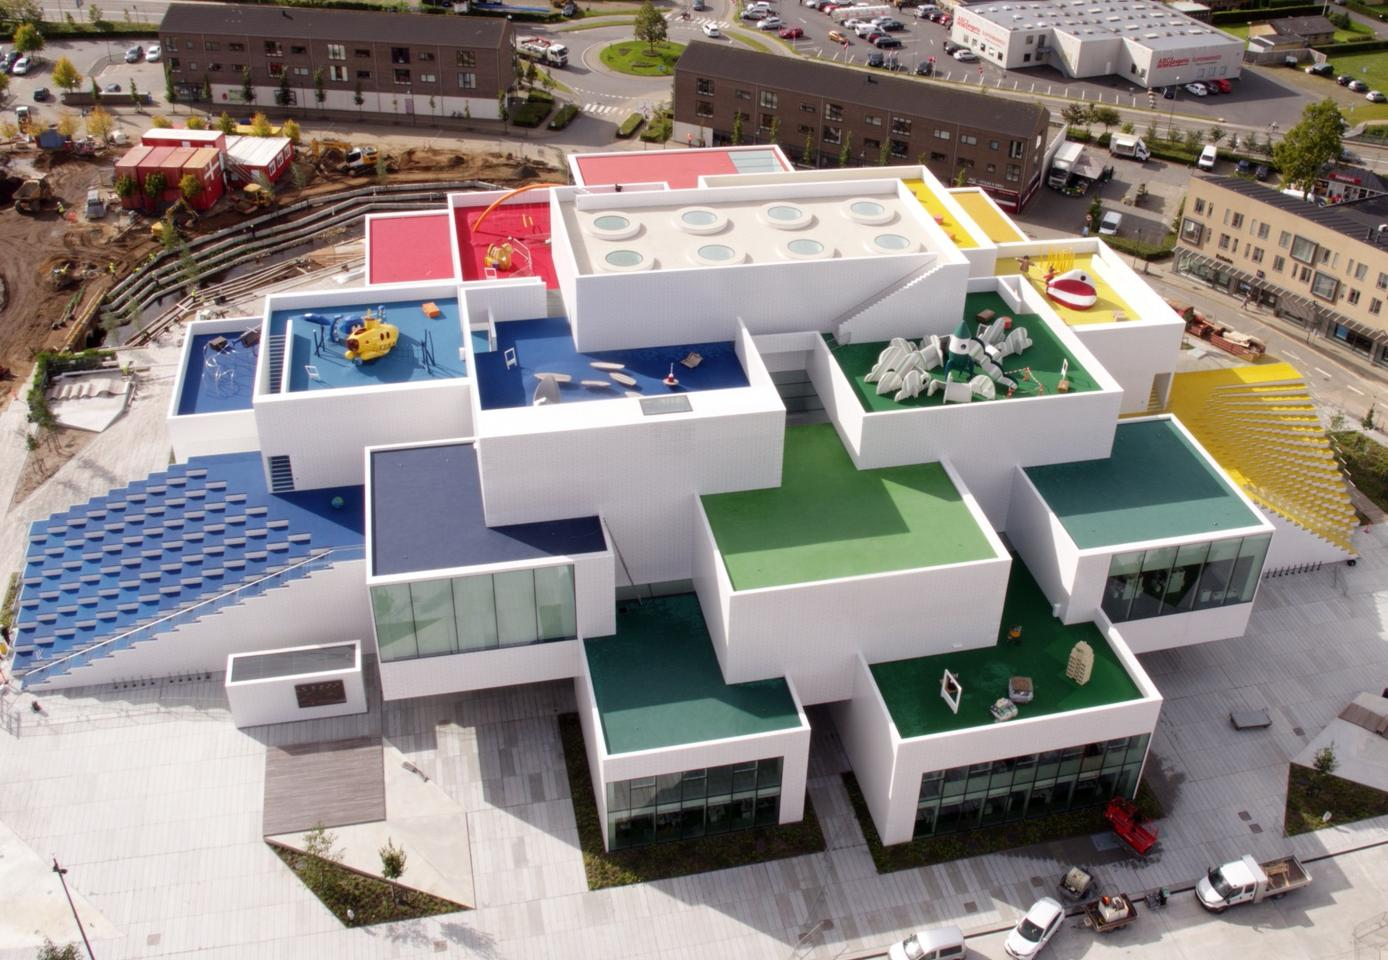 The Lego House appears to be constructed fromoversized Lego bricks